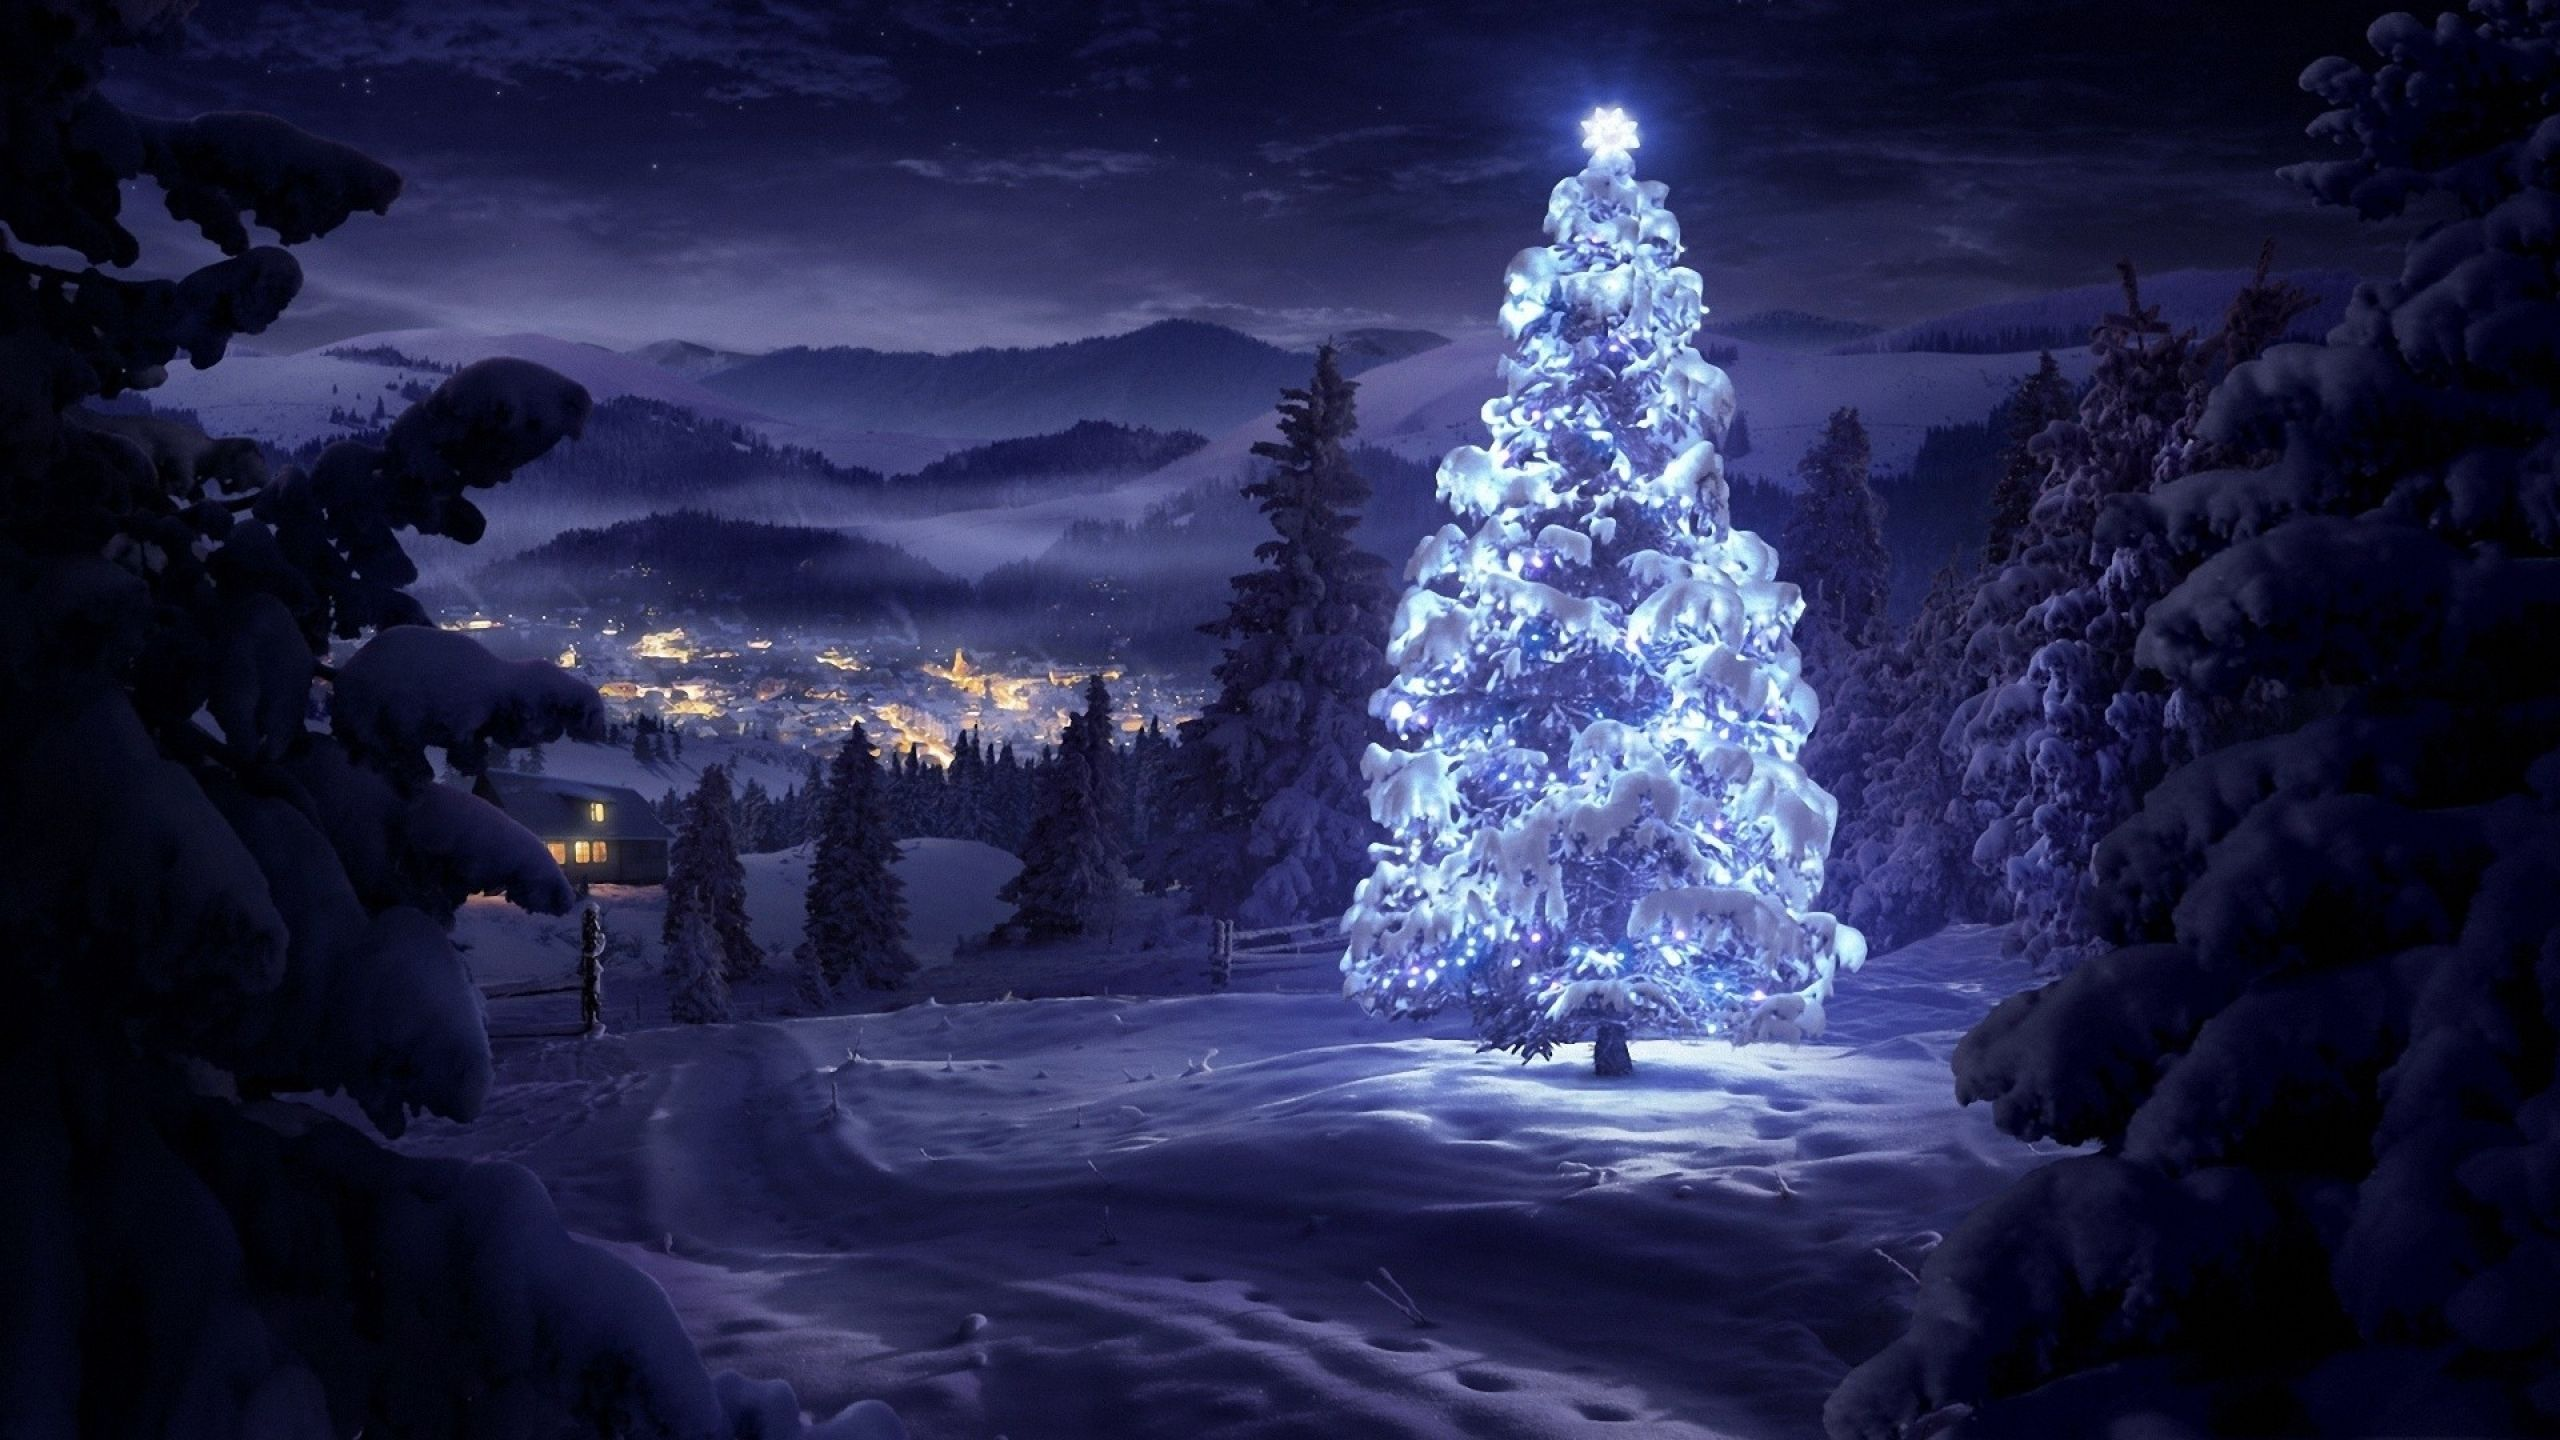 Christmas Tree In The Snow Wallpaper Weihnachtsbaum